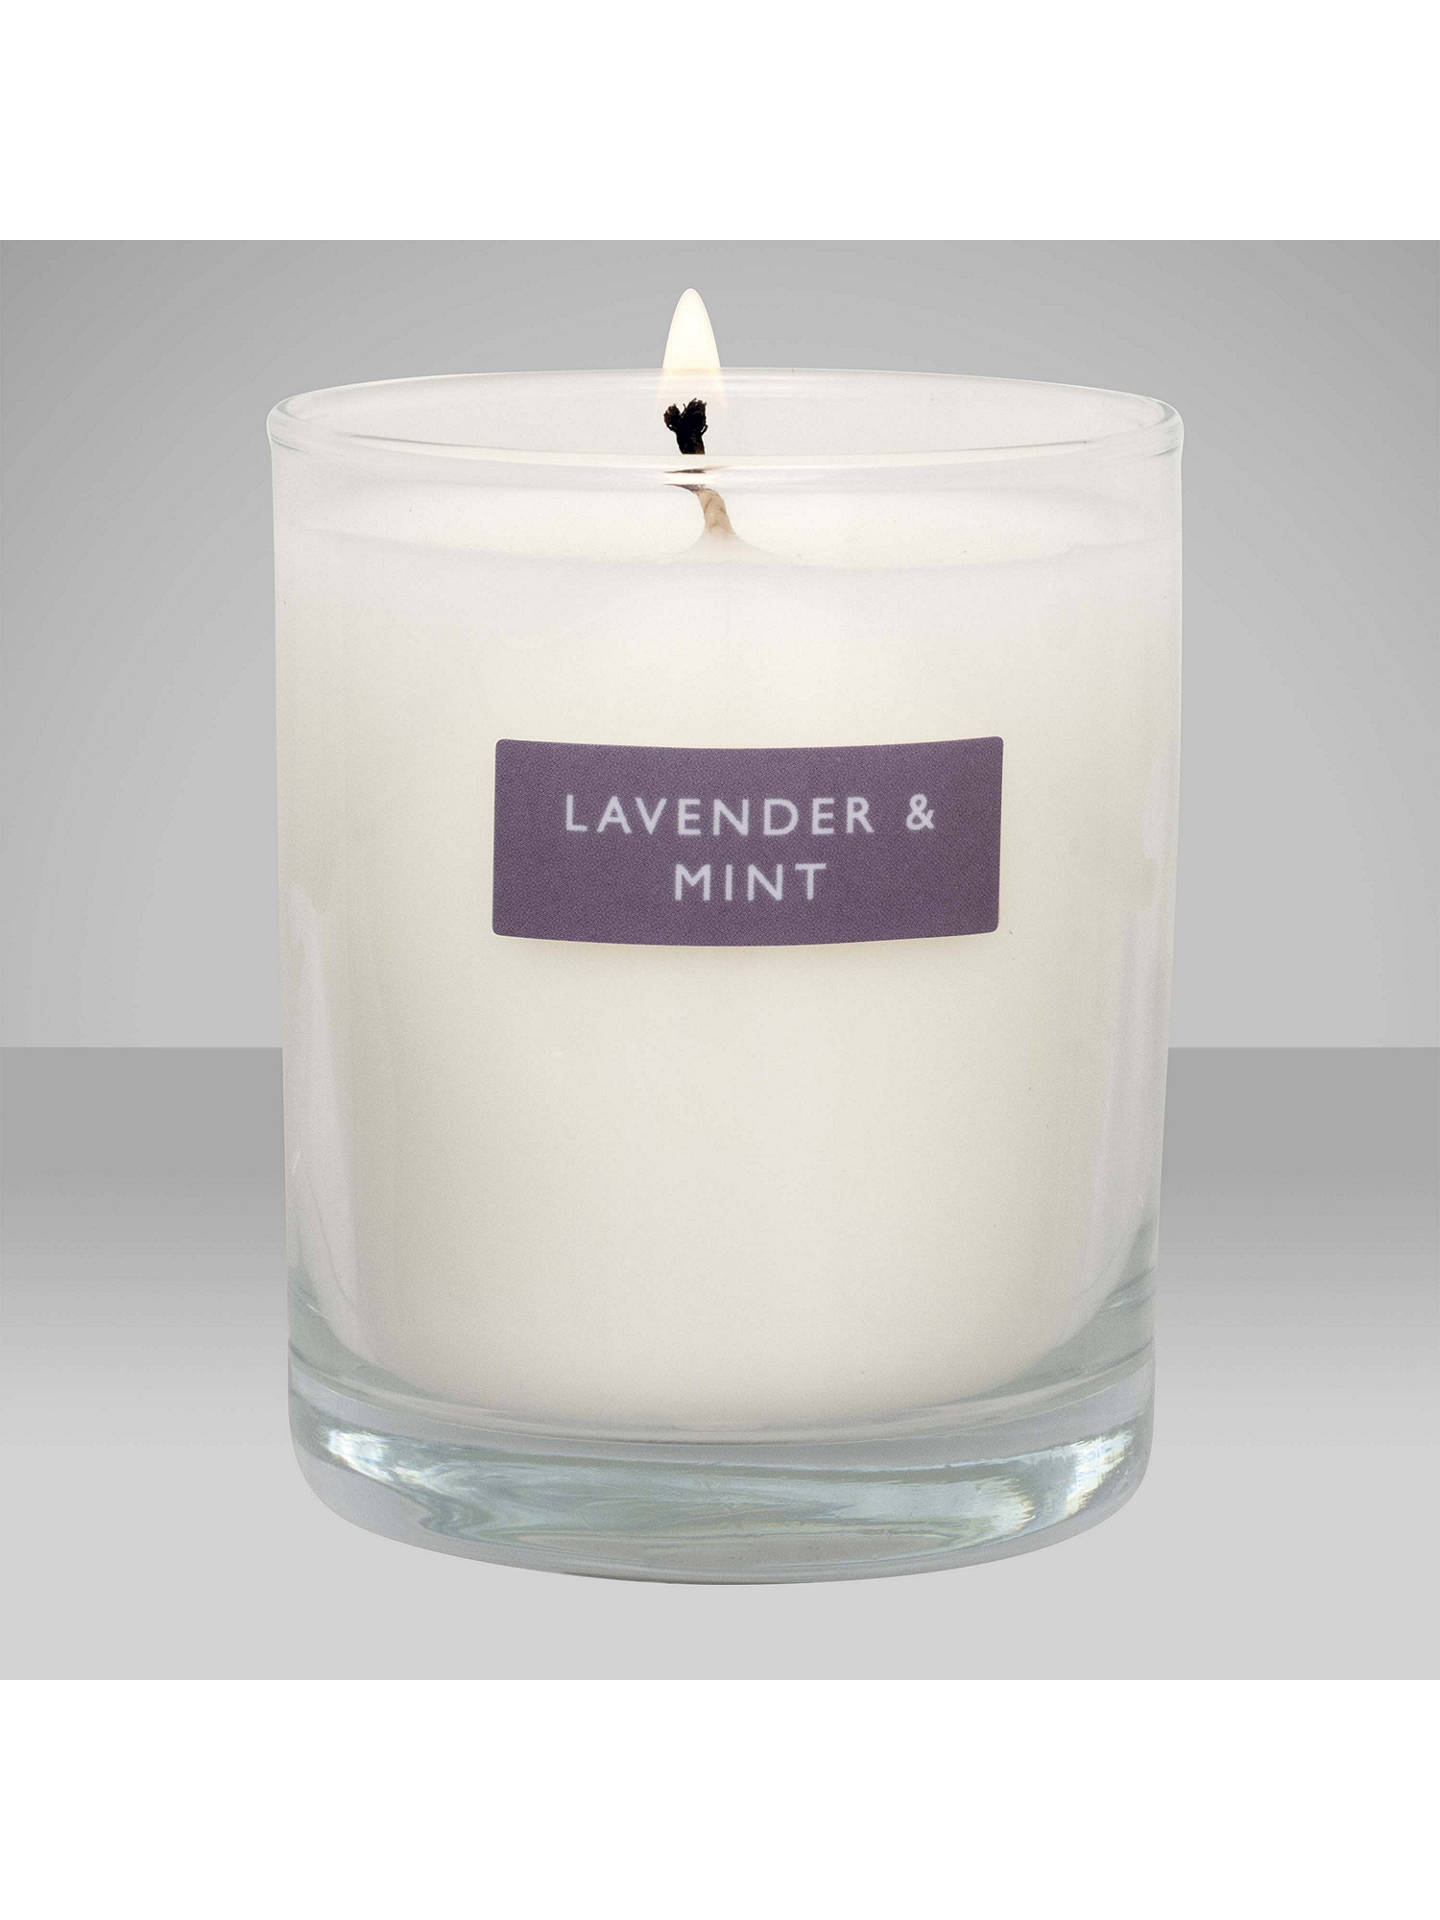 BuyJohn Lewis & Partners Lavender & Mint Scented Candle, 180g Online at johnlewis.com